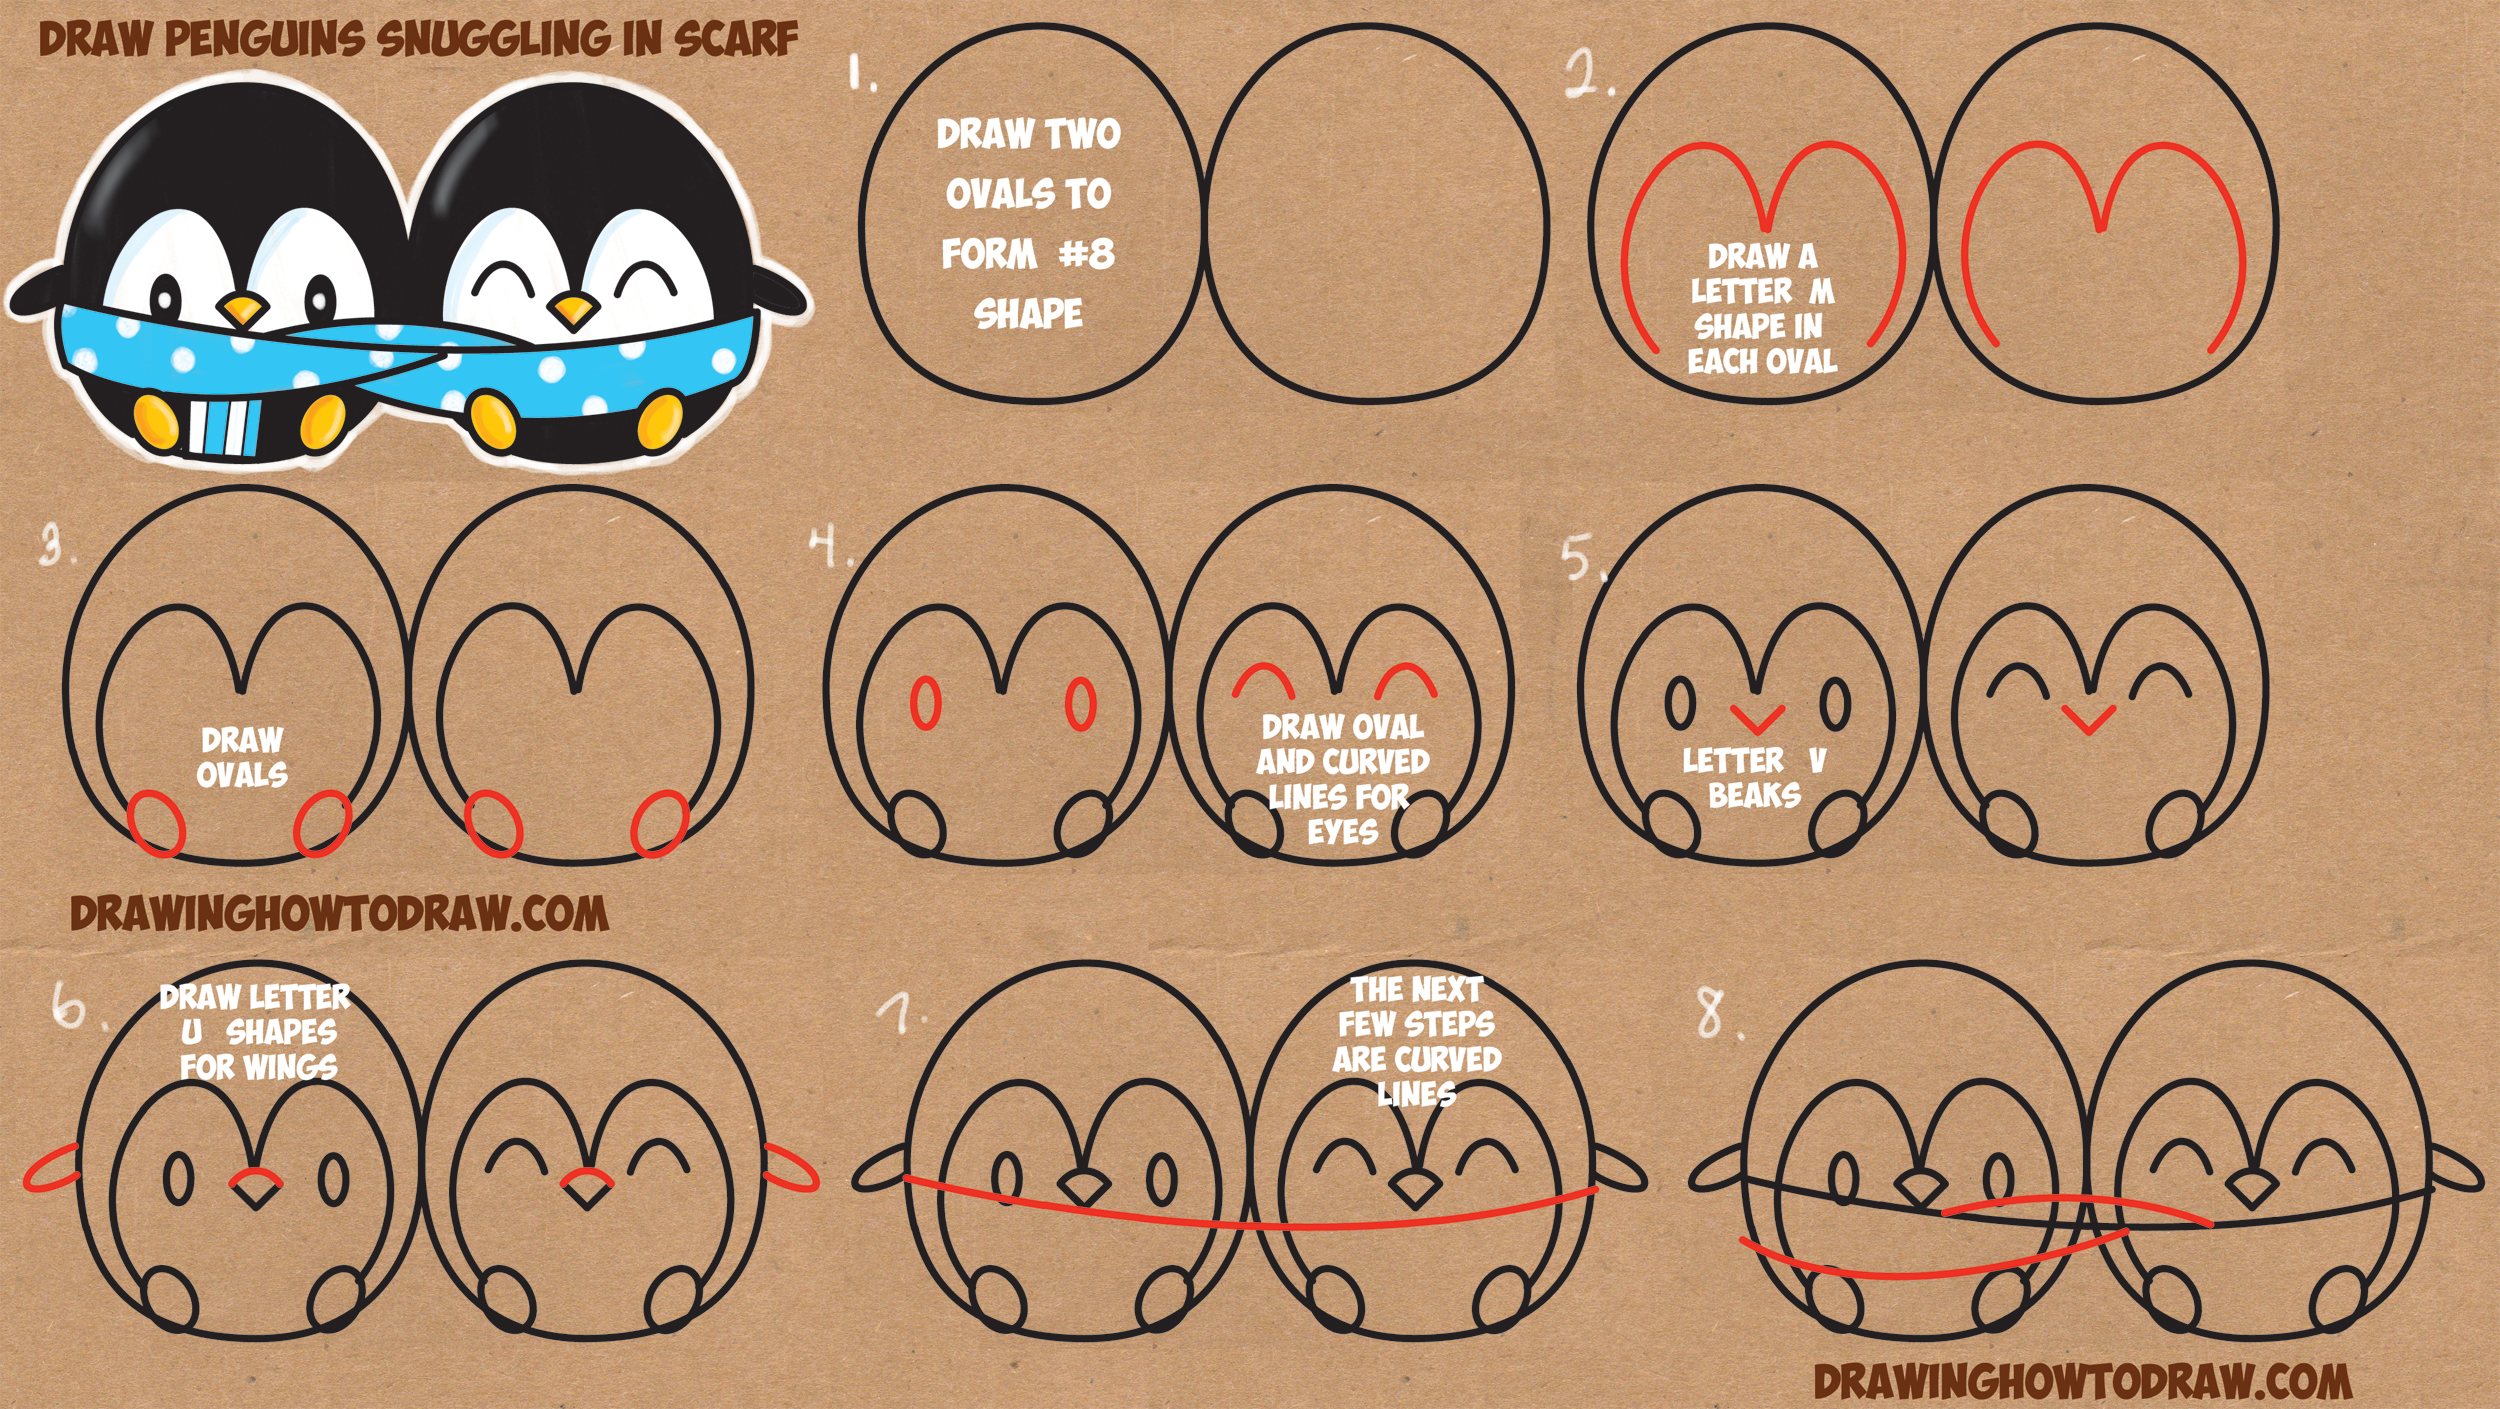 Cute penguins cute mighty pictures - How To Draw Cute Kawaii Chibi Cartoon Penguins In A Scarf For Winter Easy Step